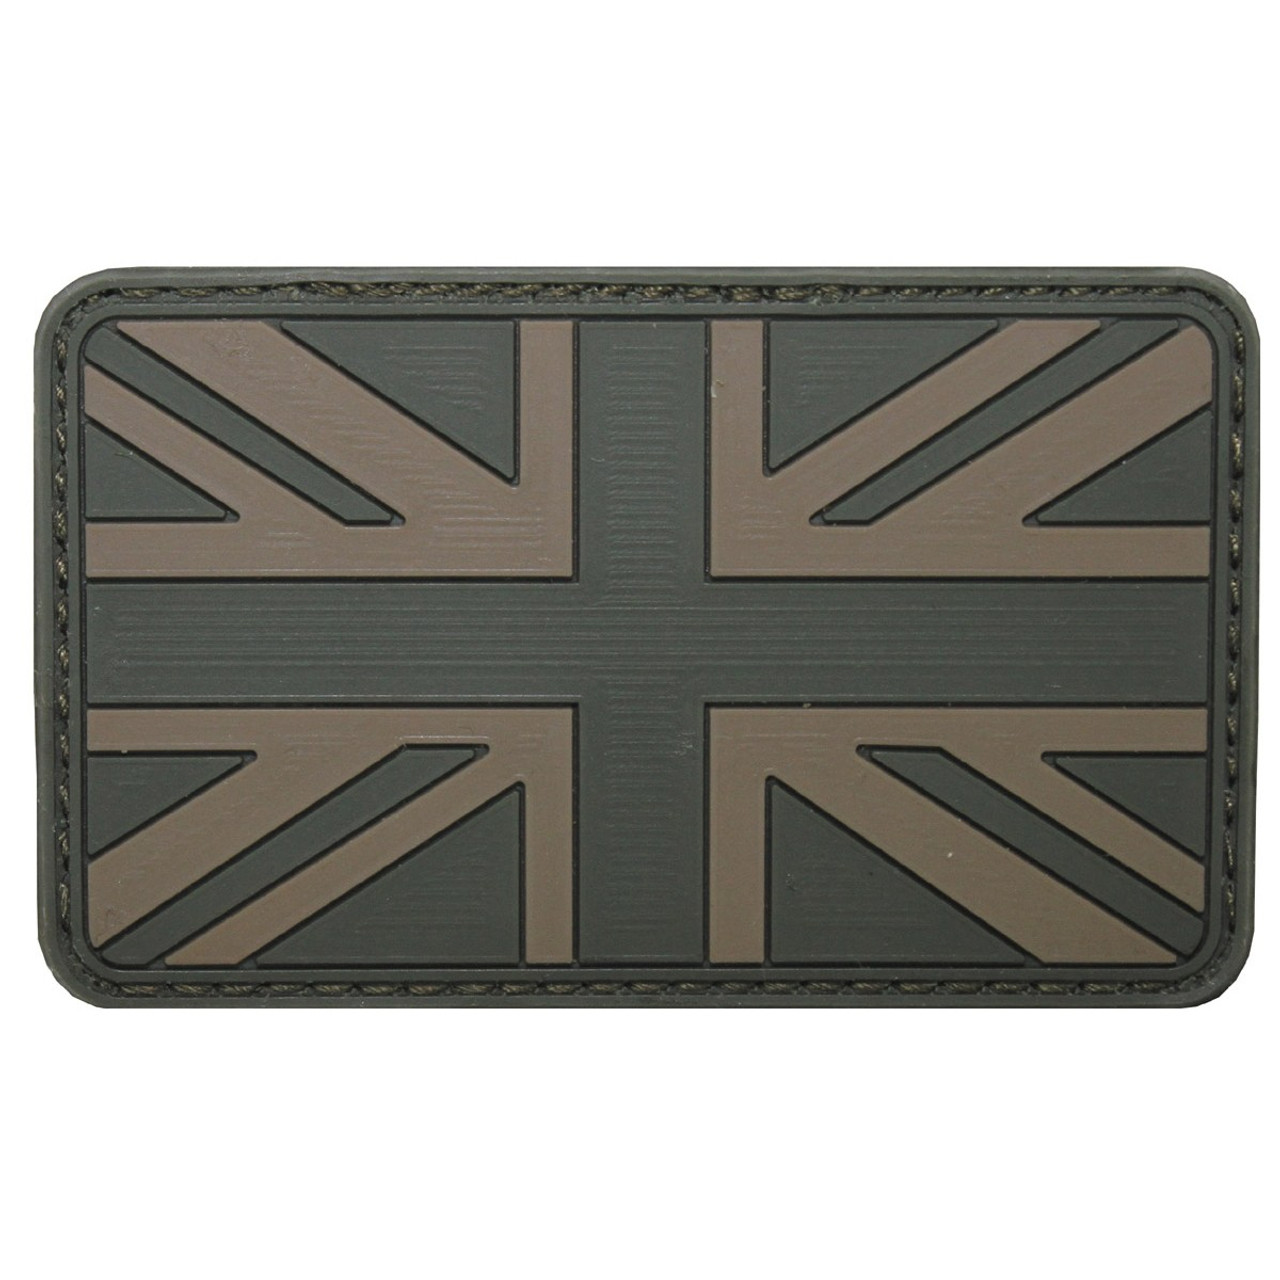 3D Patch, UK, Subdued OD